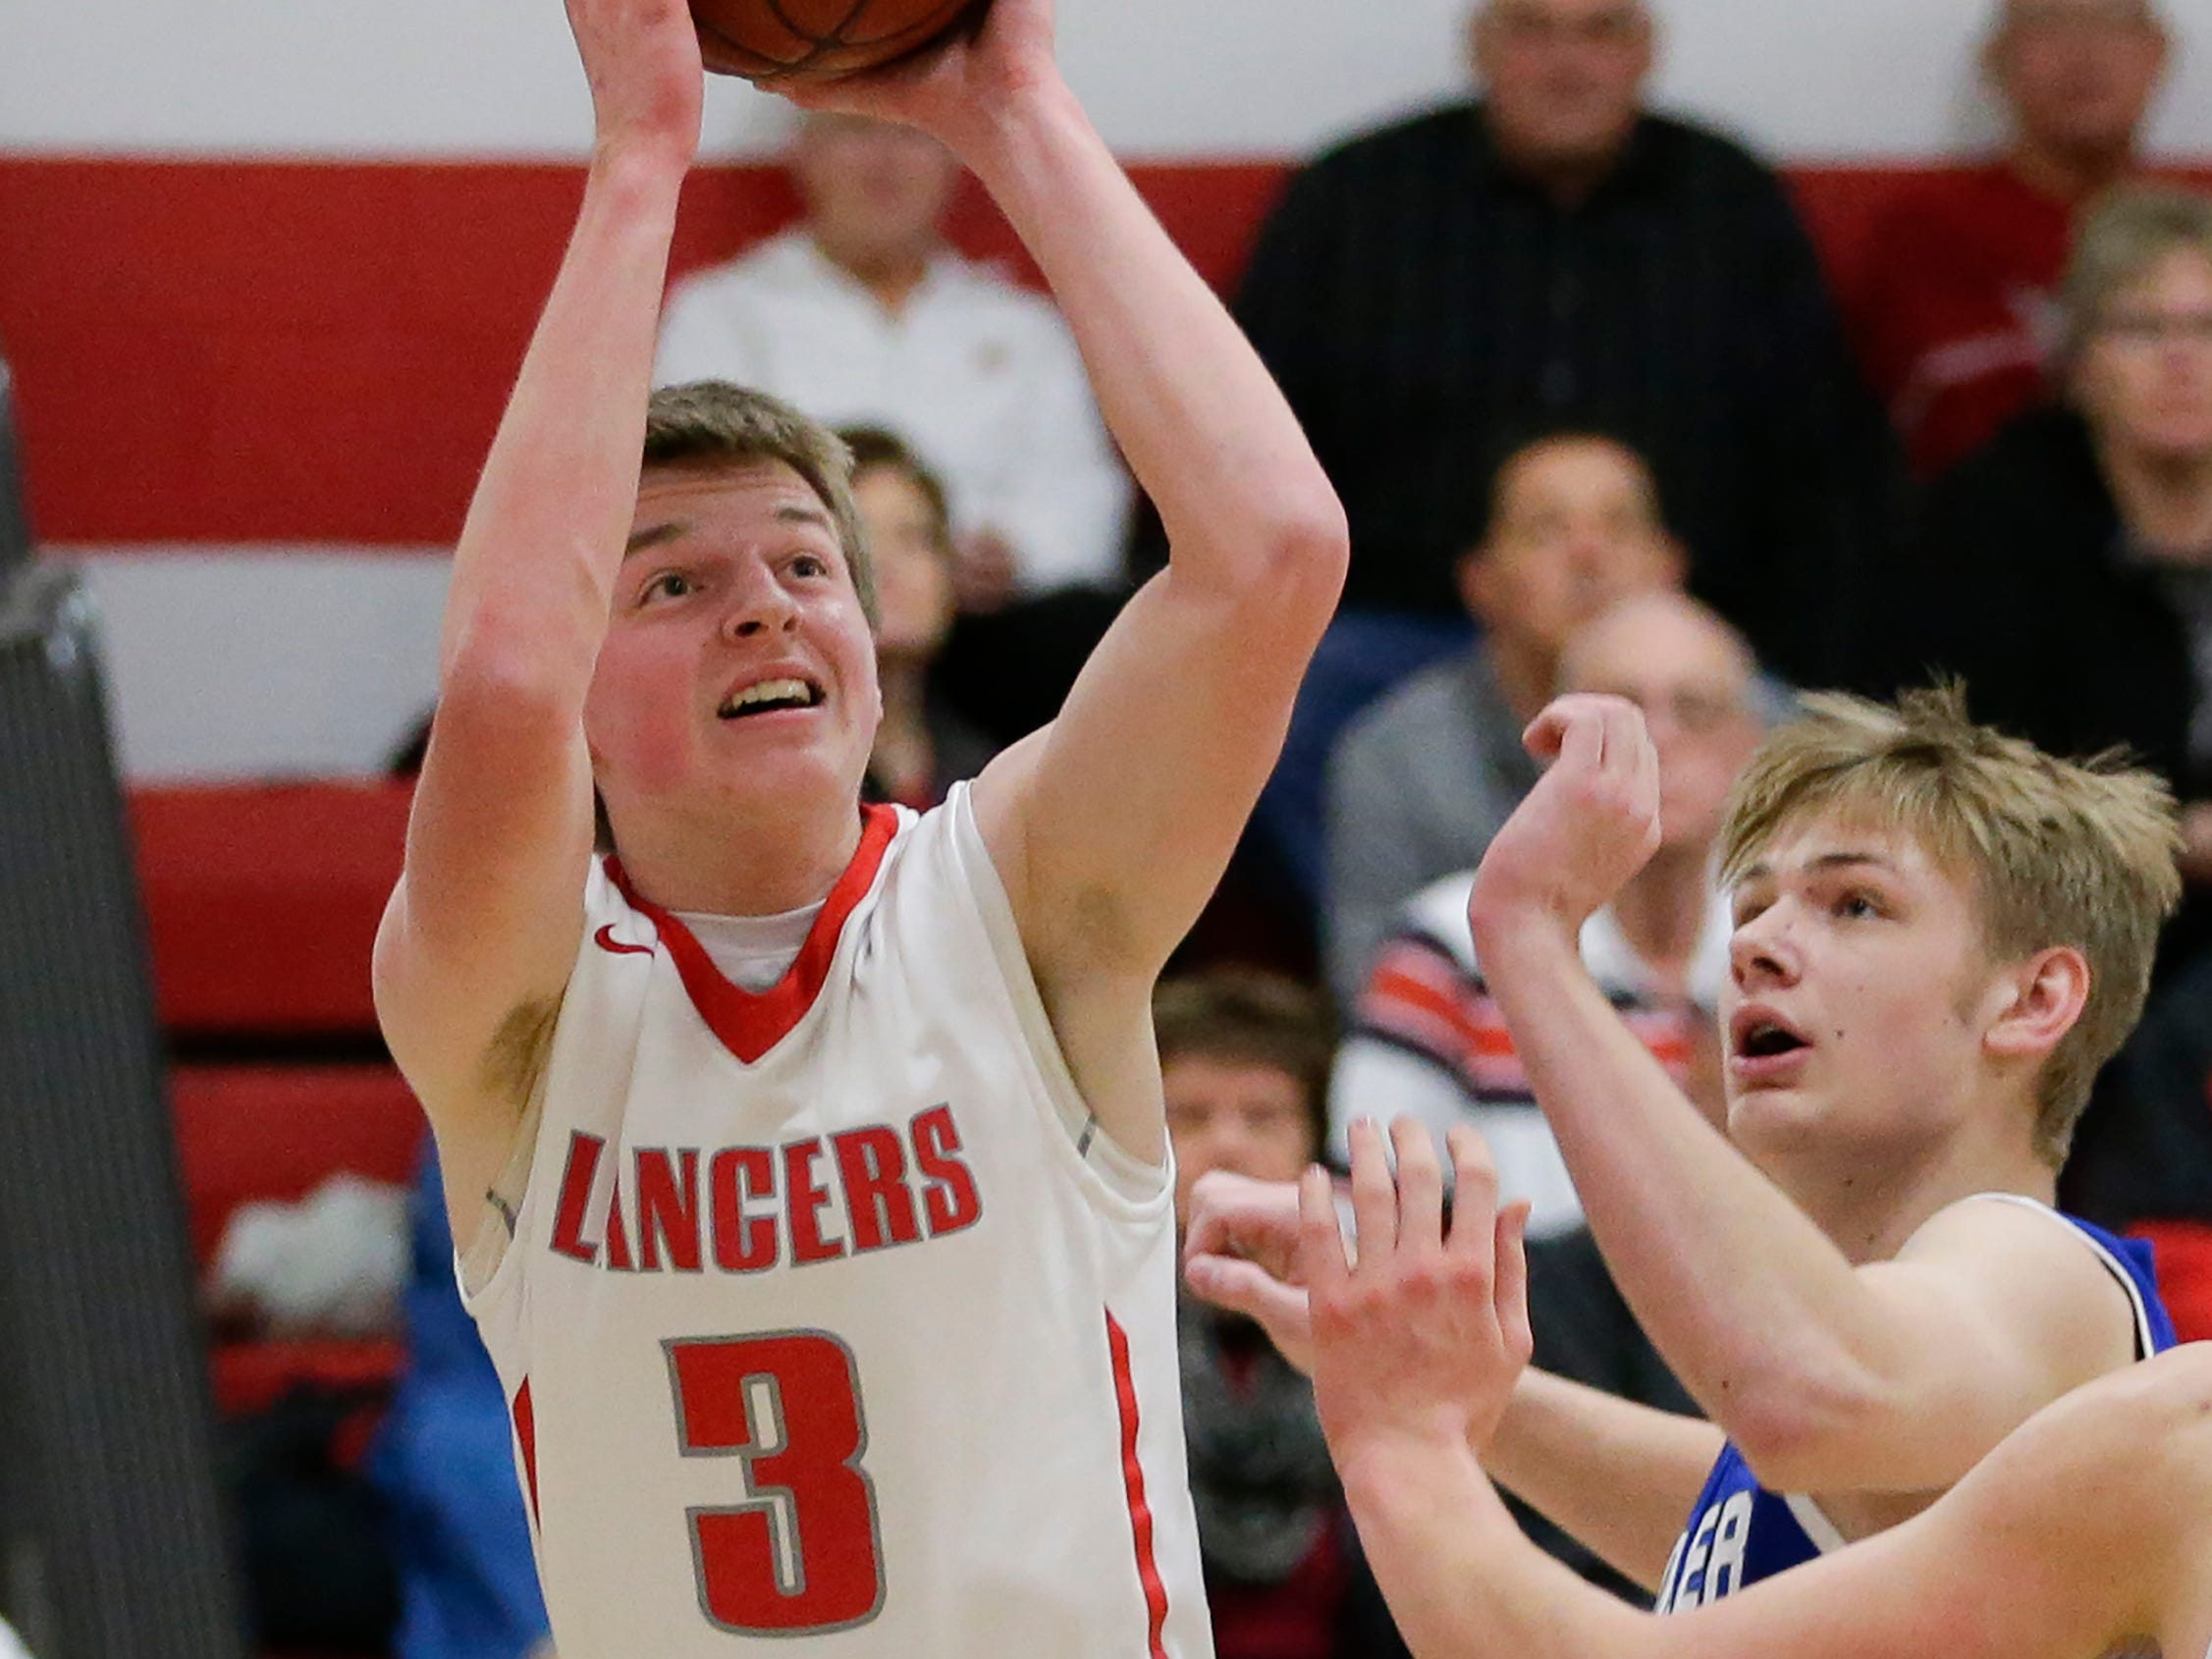 Manitowoc Lutheran's Trey Zastrow shoots against Kohler at Manitowoc Lutheran High School Friday, January 18, 2019, in Manitowoc, Wis. Joshua Clark/USA TODAY NETWORK-Wisconsin